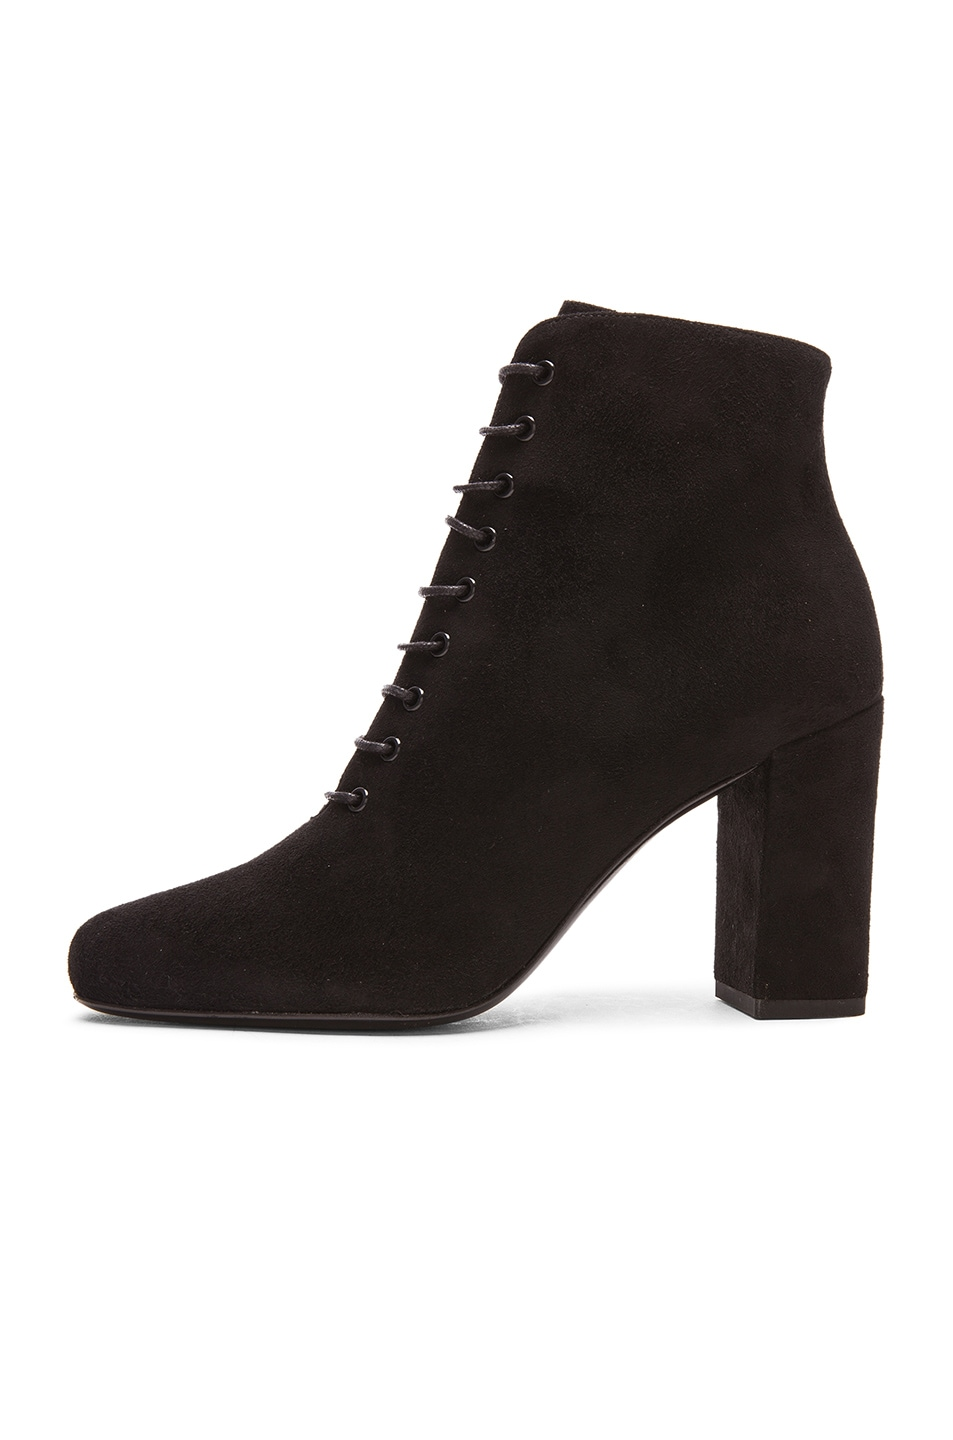 Image 5 of Saint Laurent Suede Lace Up Babies Boots in Black